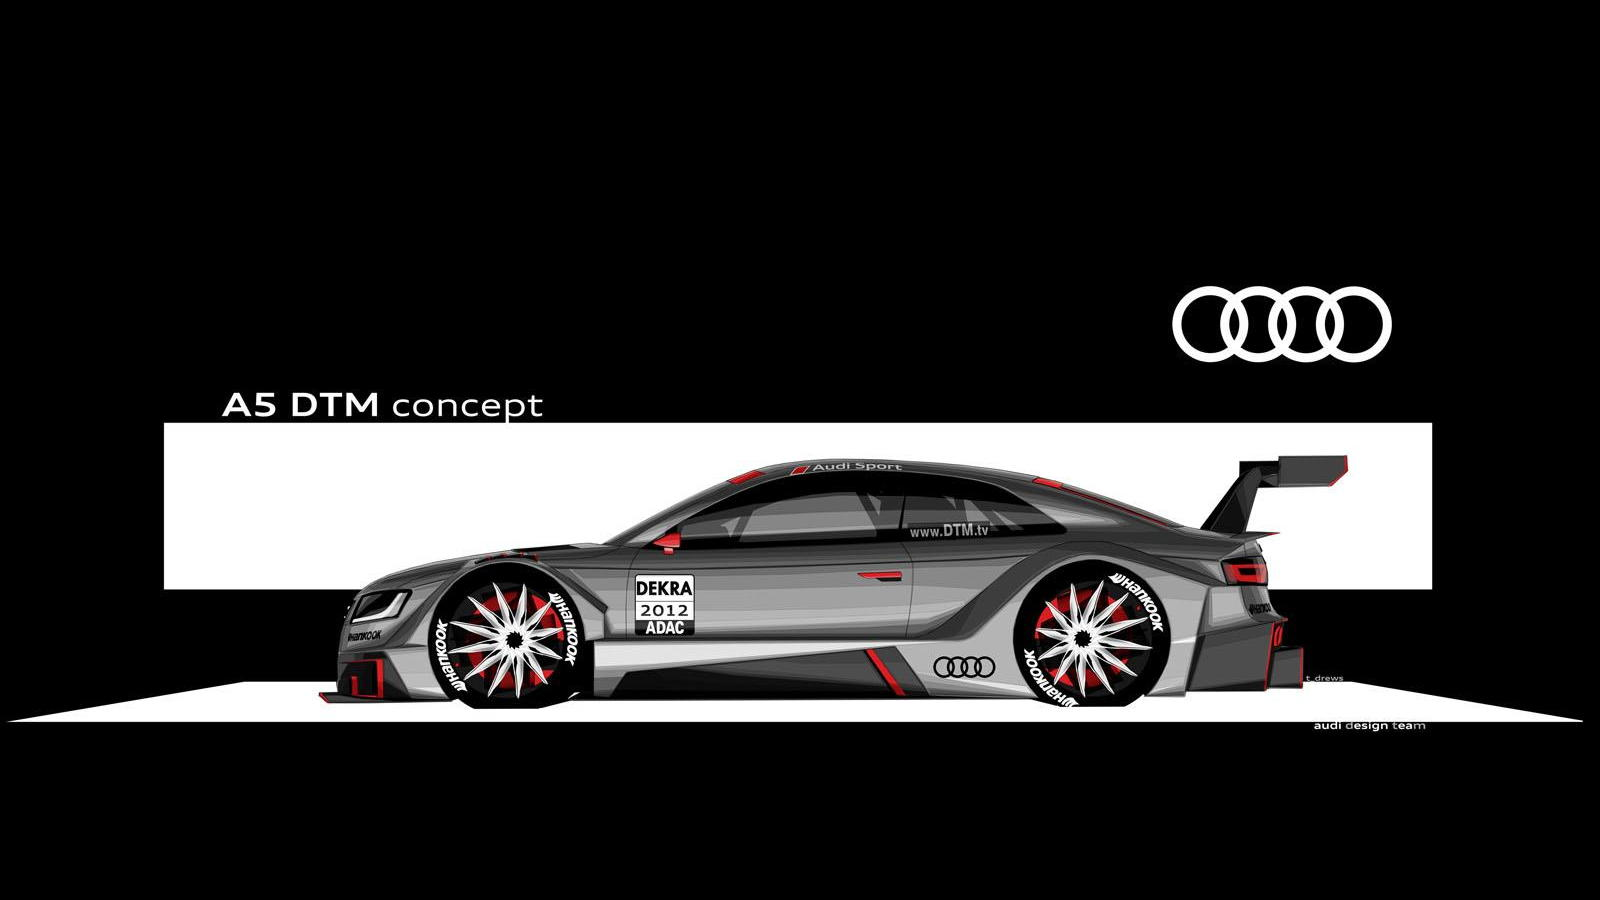 2012 Audi R17 A5 DTM race car preview sketch